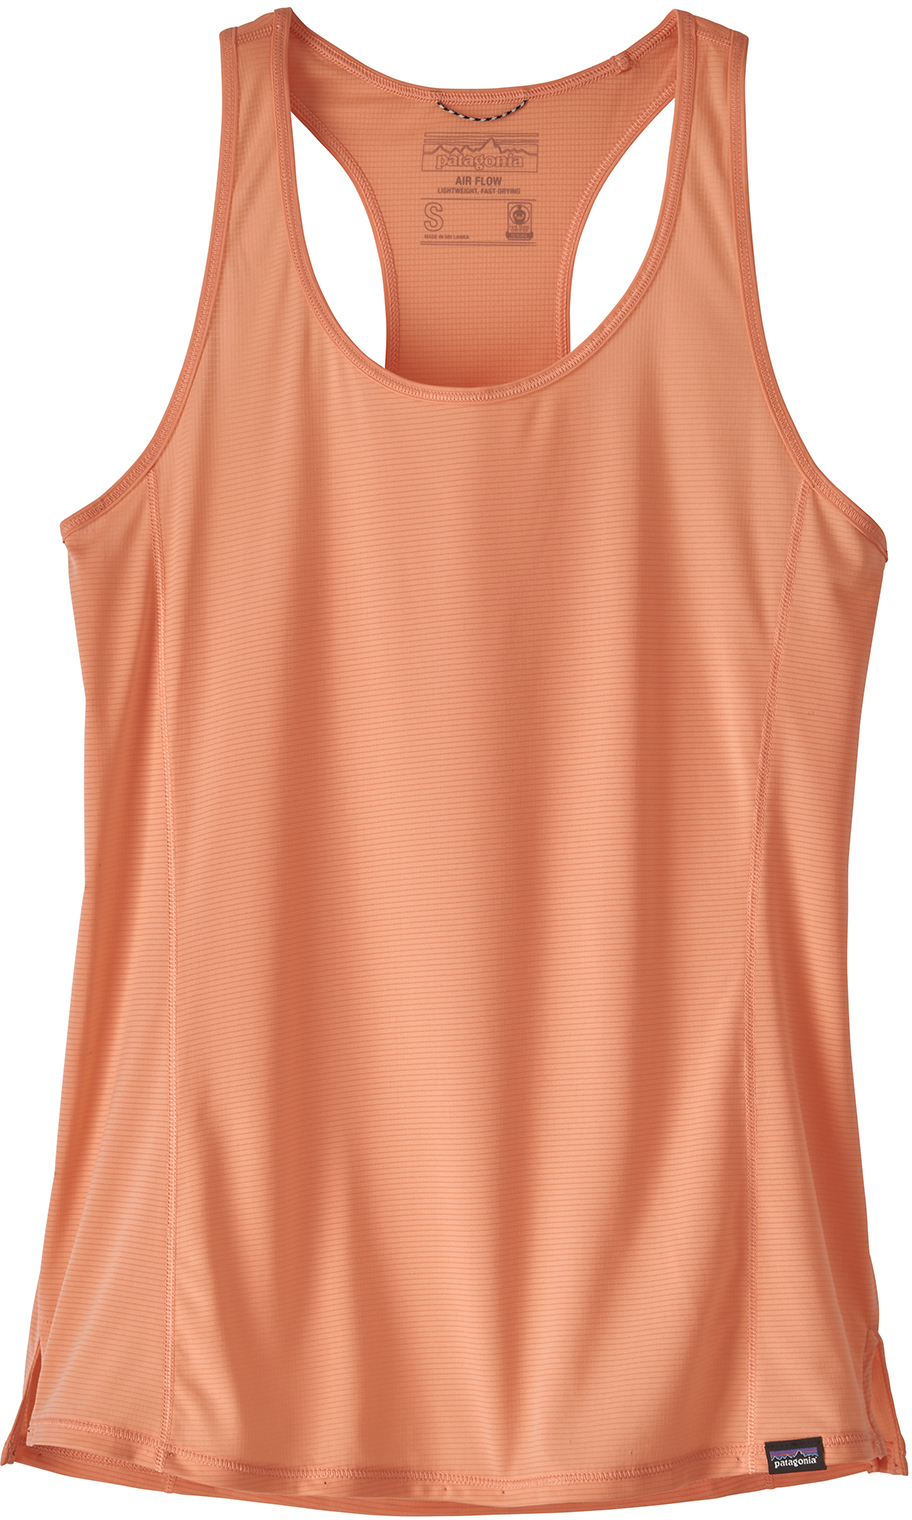 4980caa9b Training tank tops | MEC